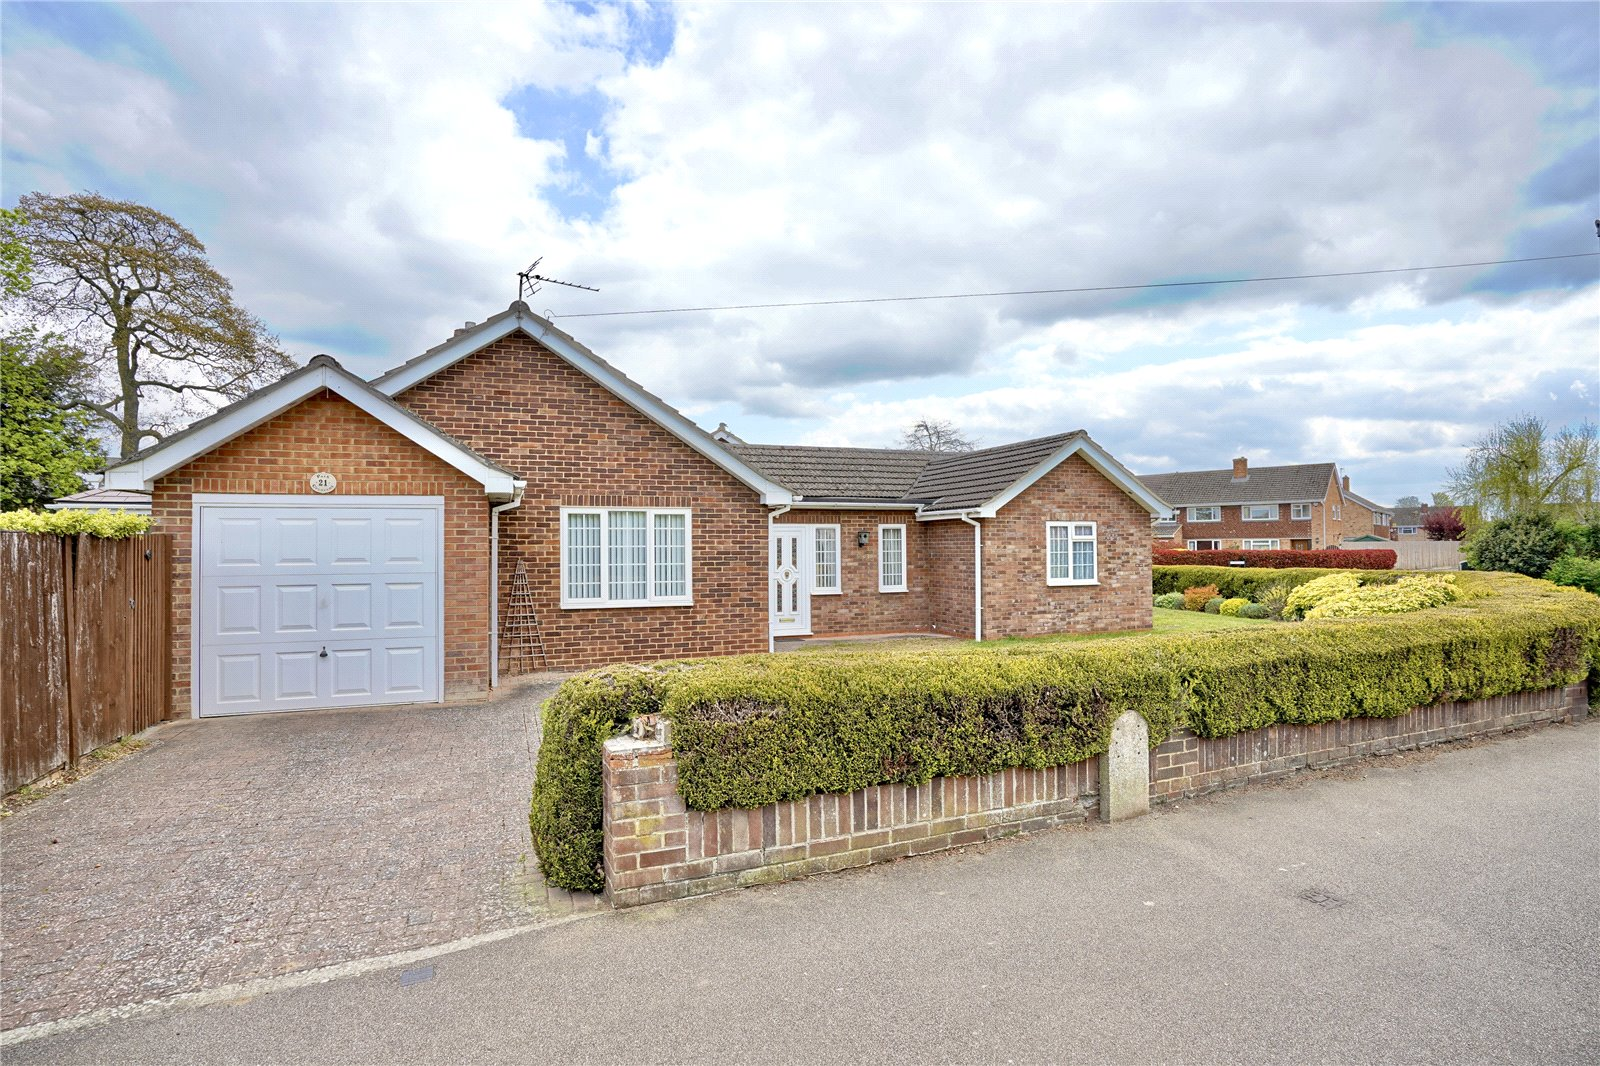 2 bed bungalow for sale in Little Paxton, PE19 6ER, PE19